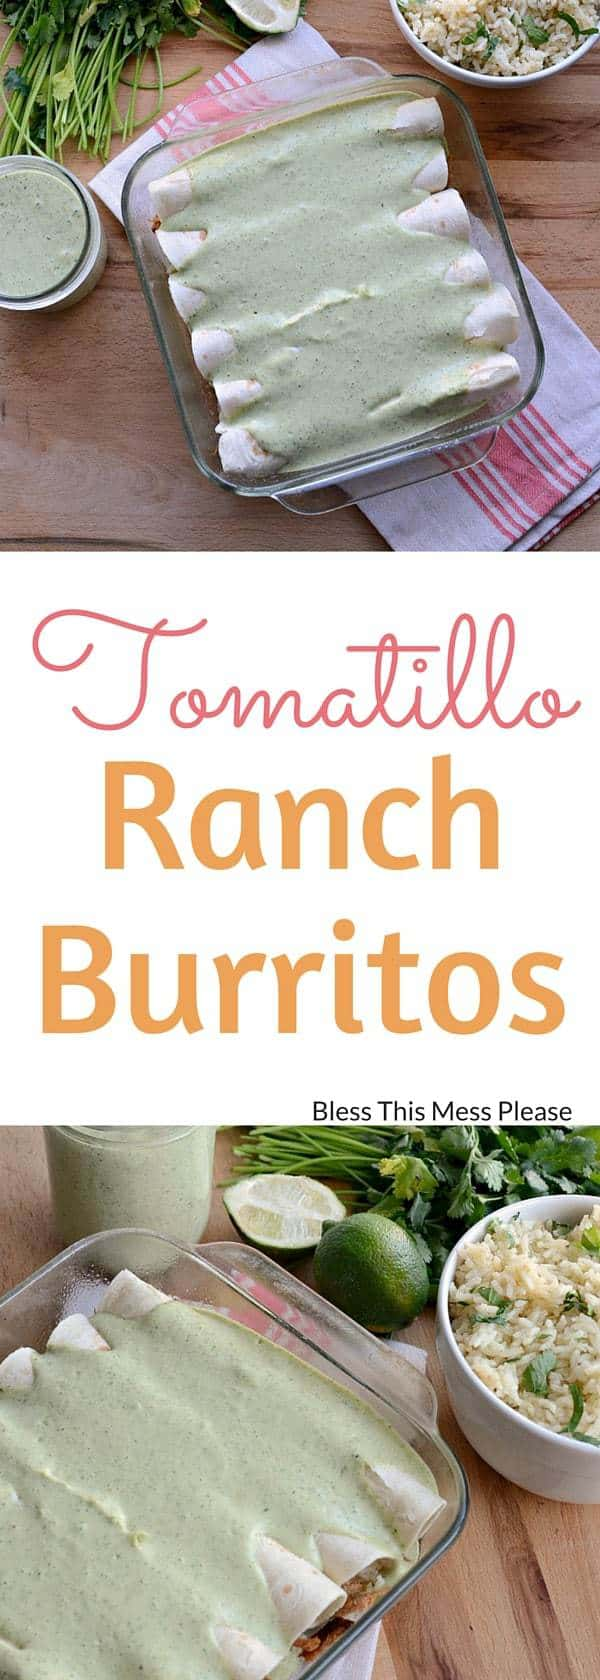 Tomatillo Ranch Burritos